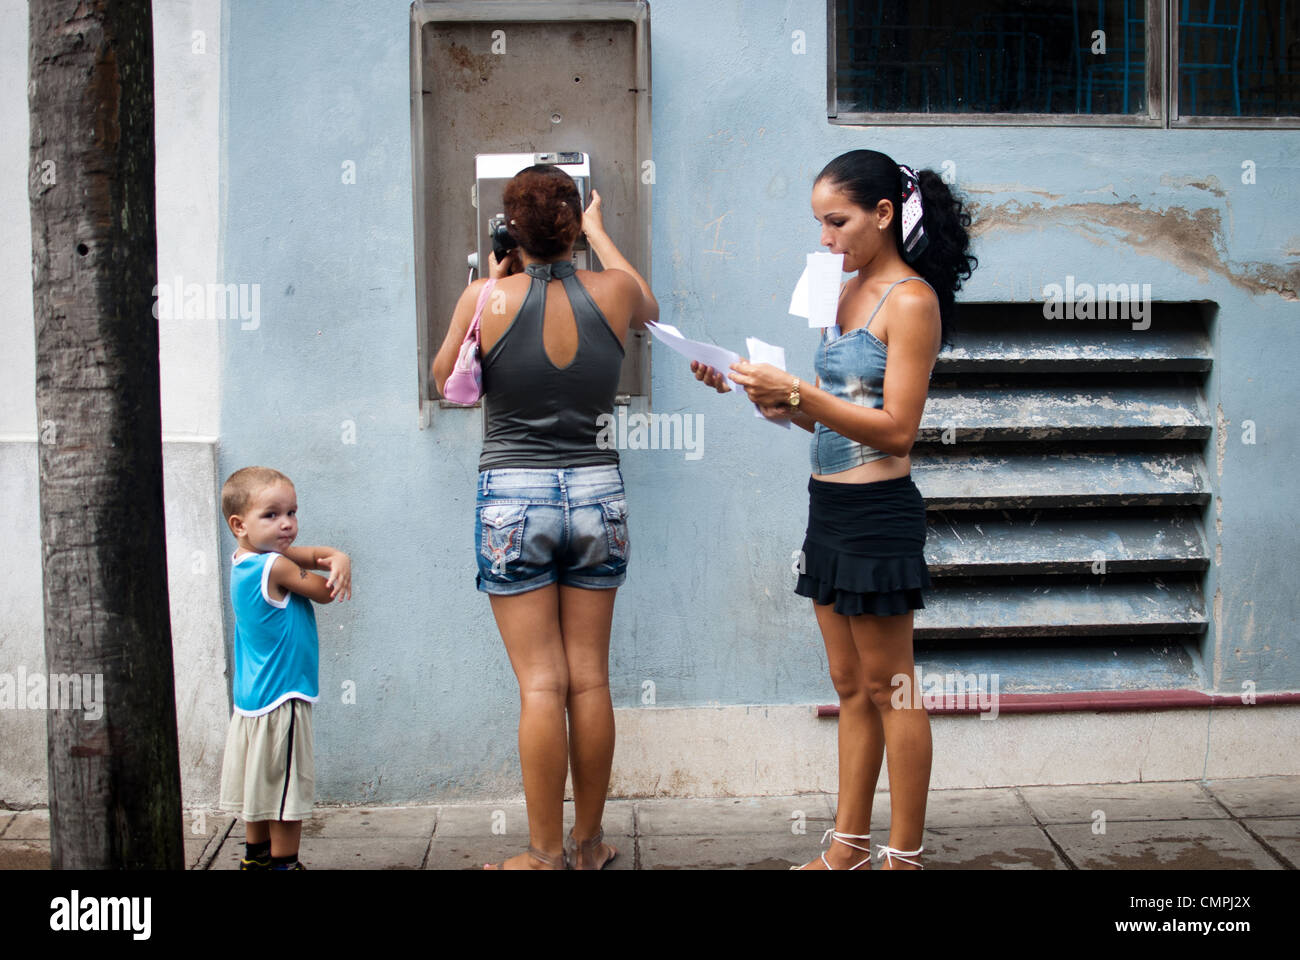 People using a  public phone, lady holding important papers in her month and hands trying to sort them out, Cuba - Stock Image